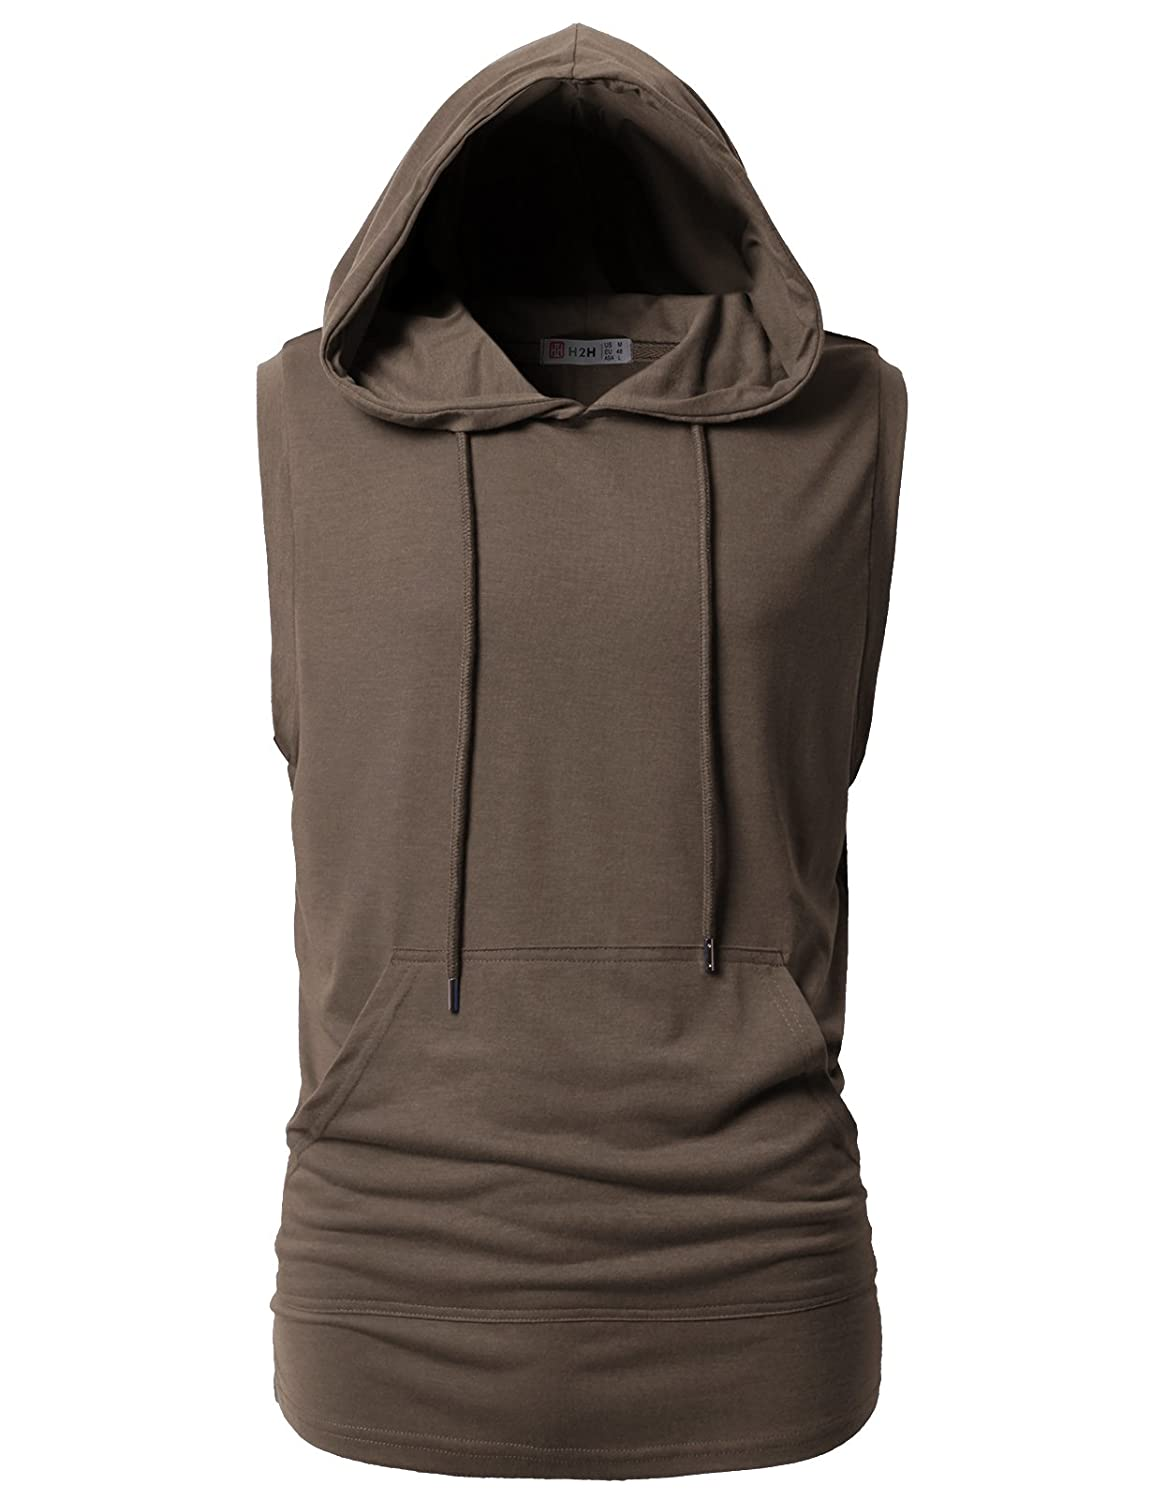 H2H Mens Casual Hipster Hip Hop Sleeveless Hoodie Longline Tank-Top with Pocket #CMTTK028